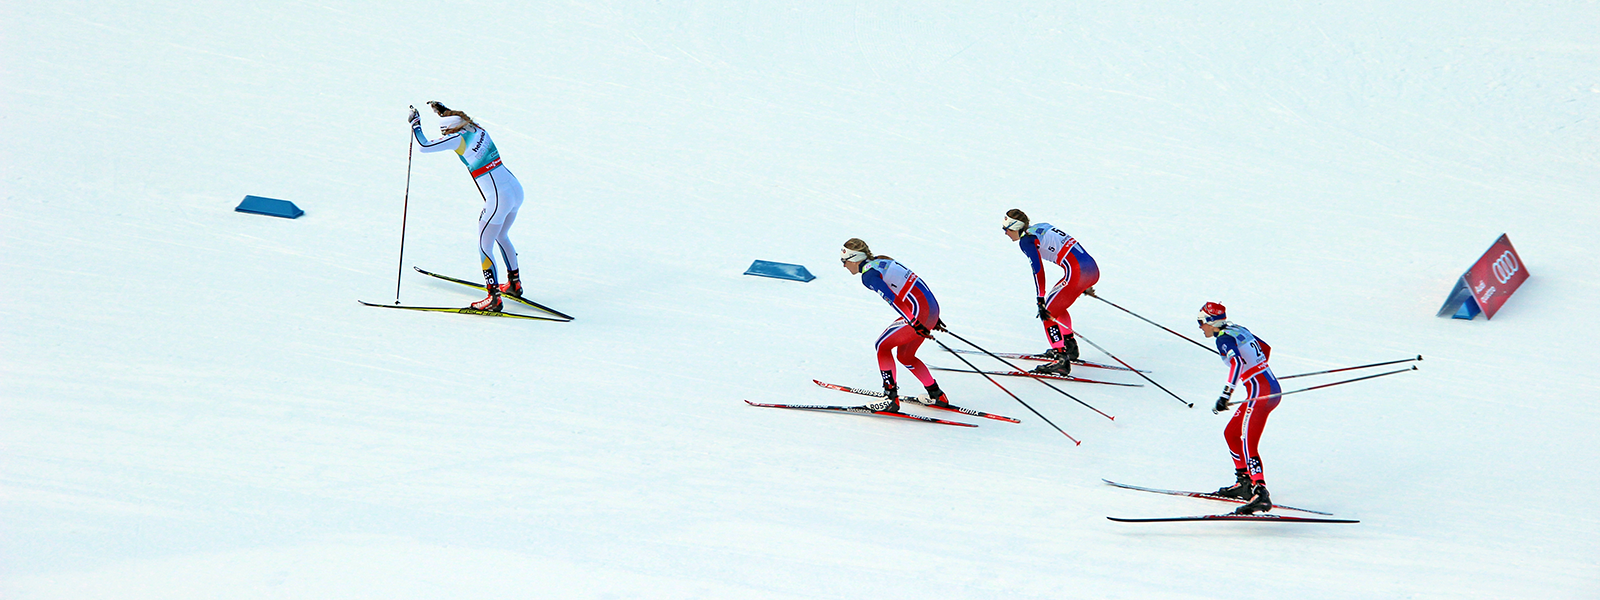 http://nd-ratece-planica.si/wp-content/uploads/2016/12/tekacice.png